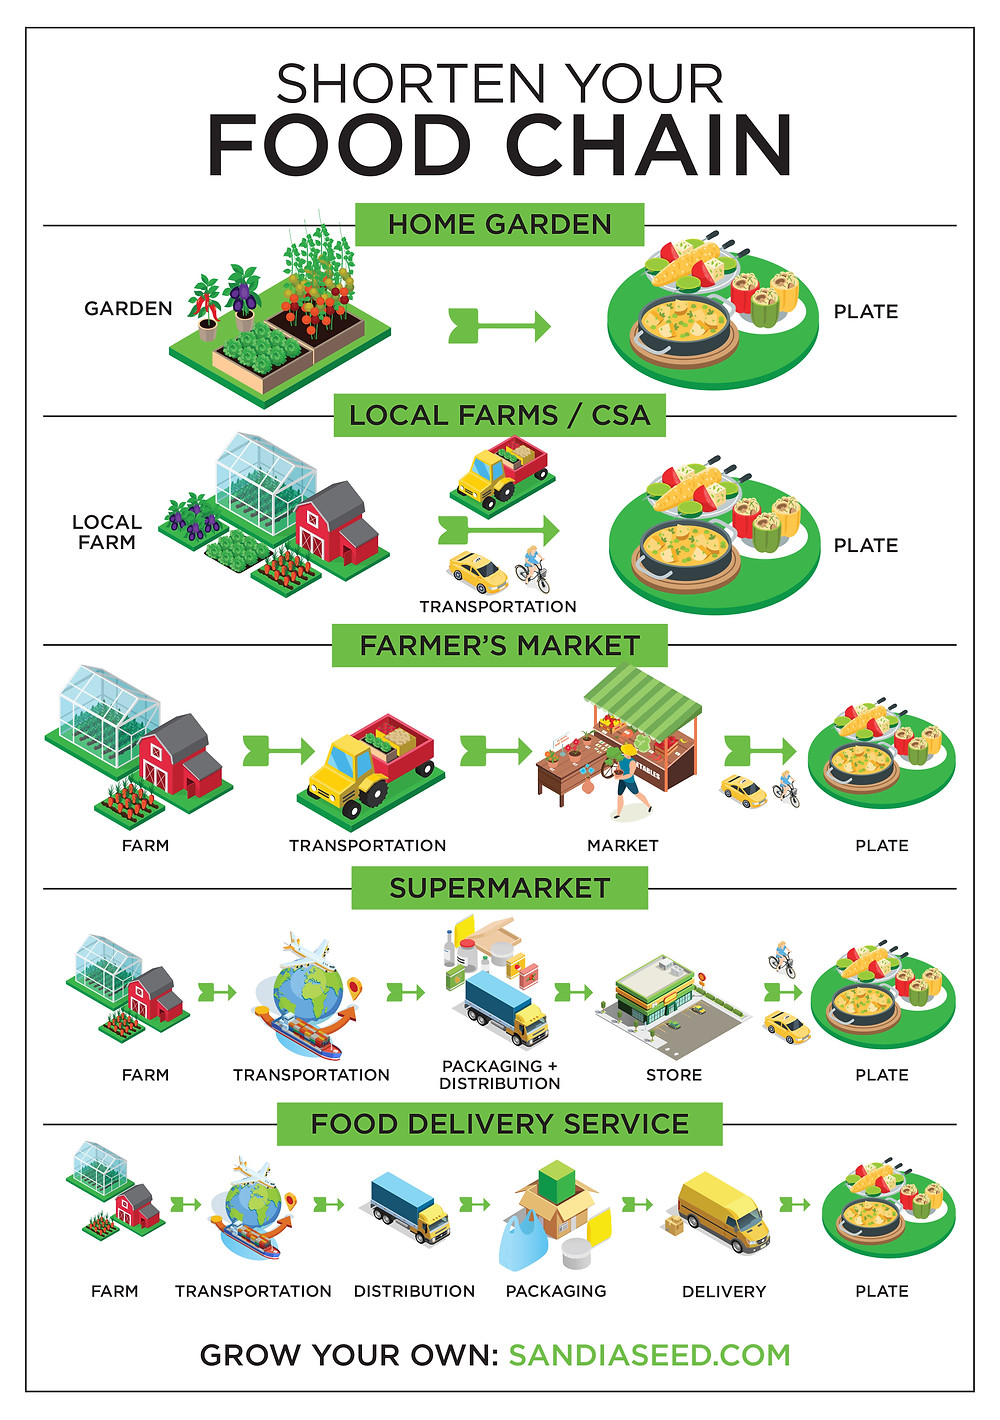 Shorten your Food Chain Infographic Designed by Picklewix.com for SandiaSeed.com